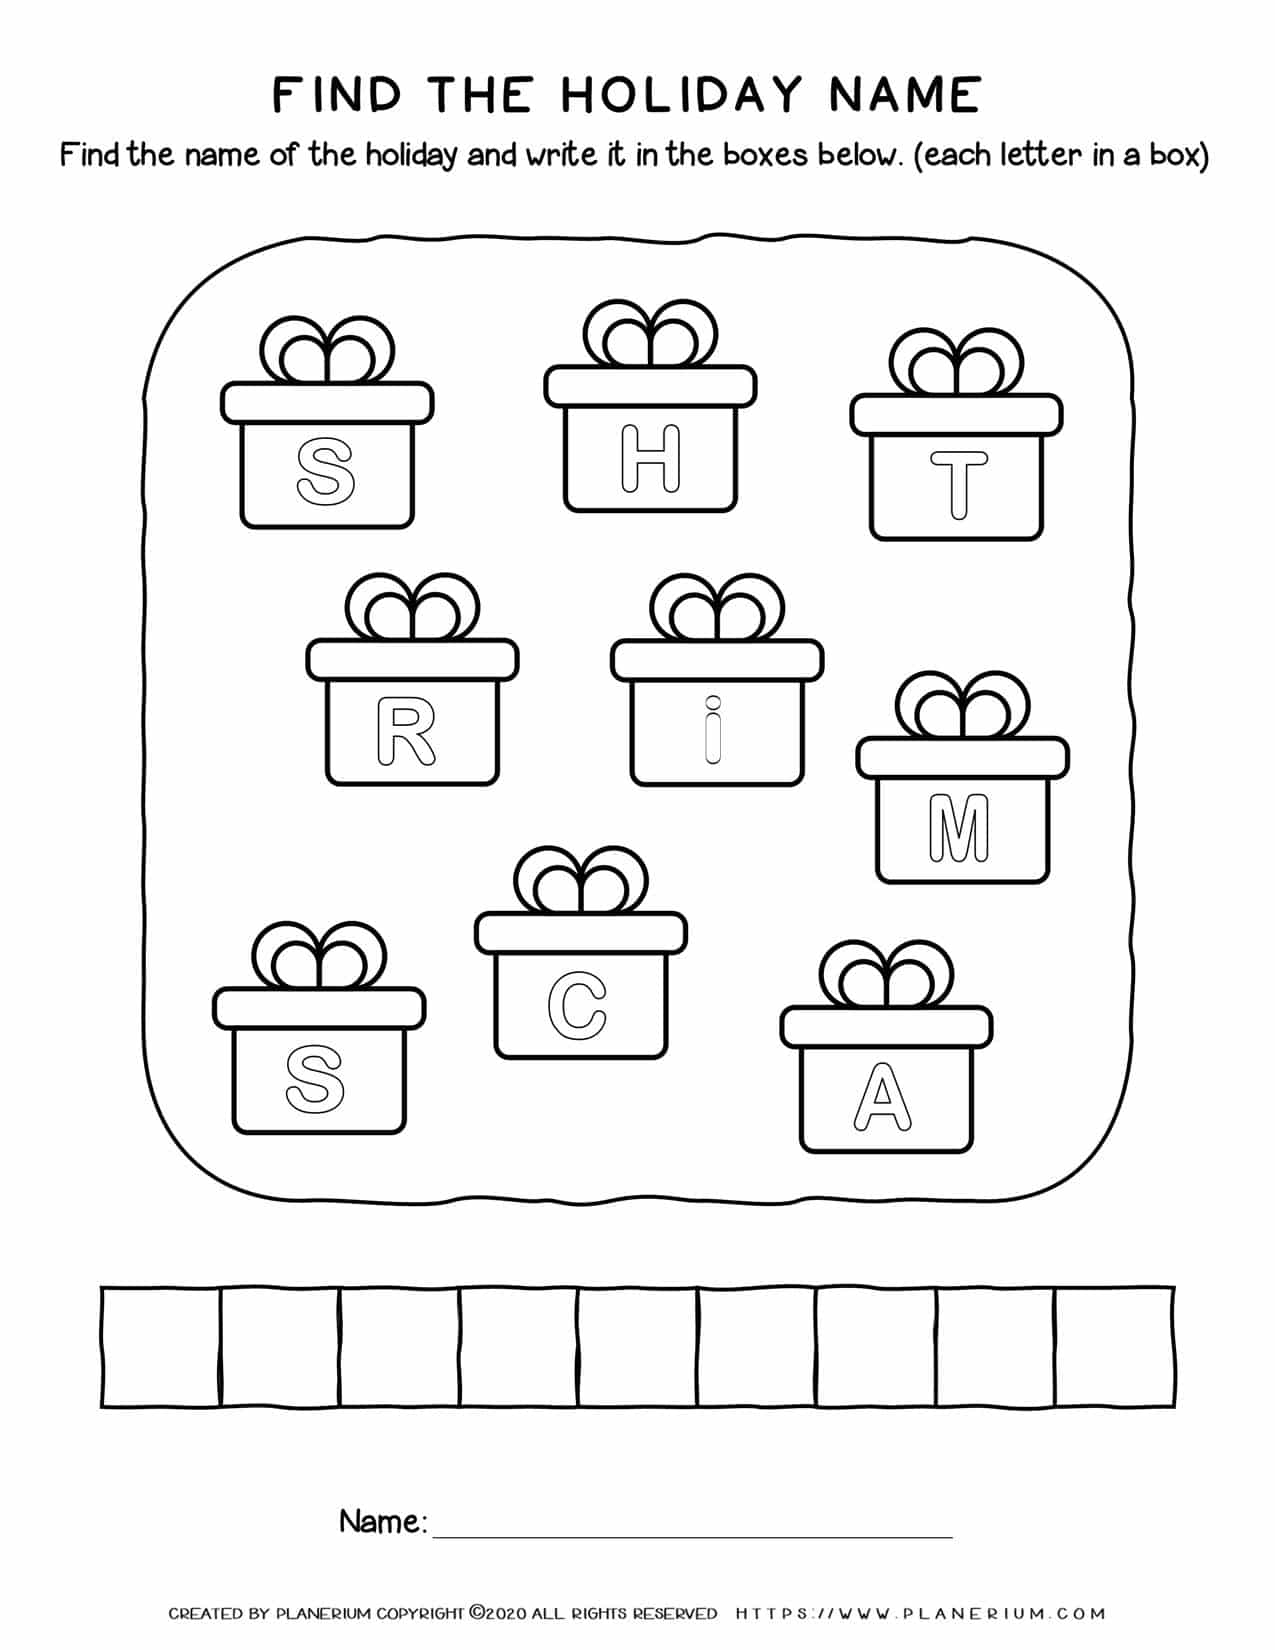 Christmas Worksheet - Find the Holiday | Free Printables | Planerium